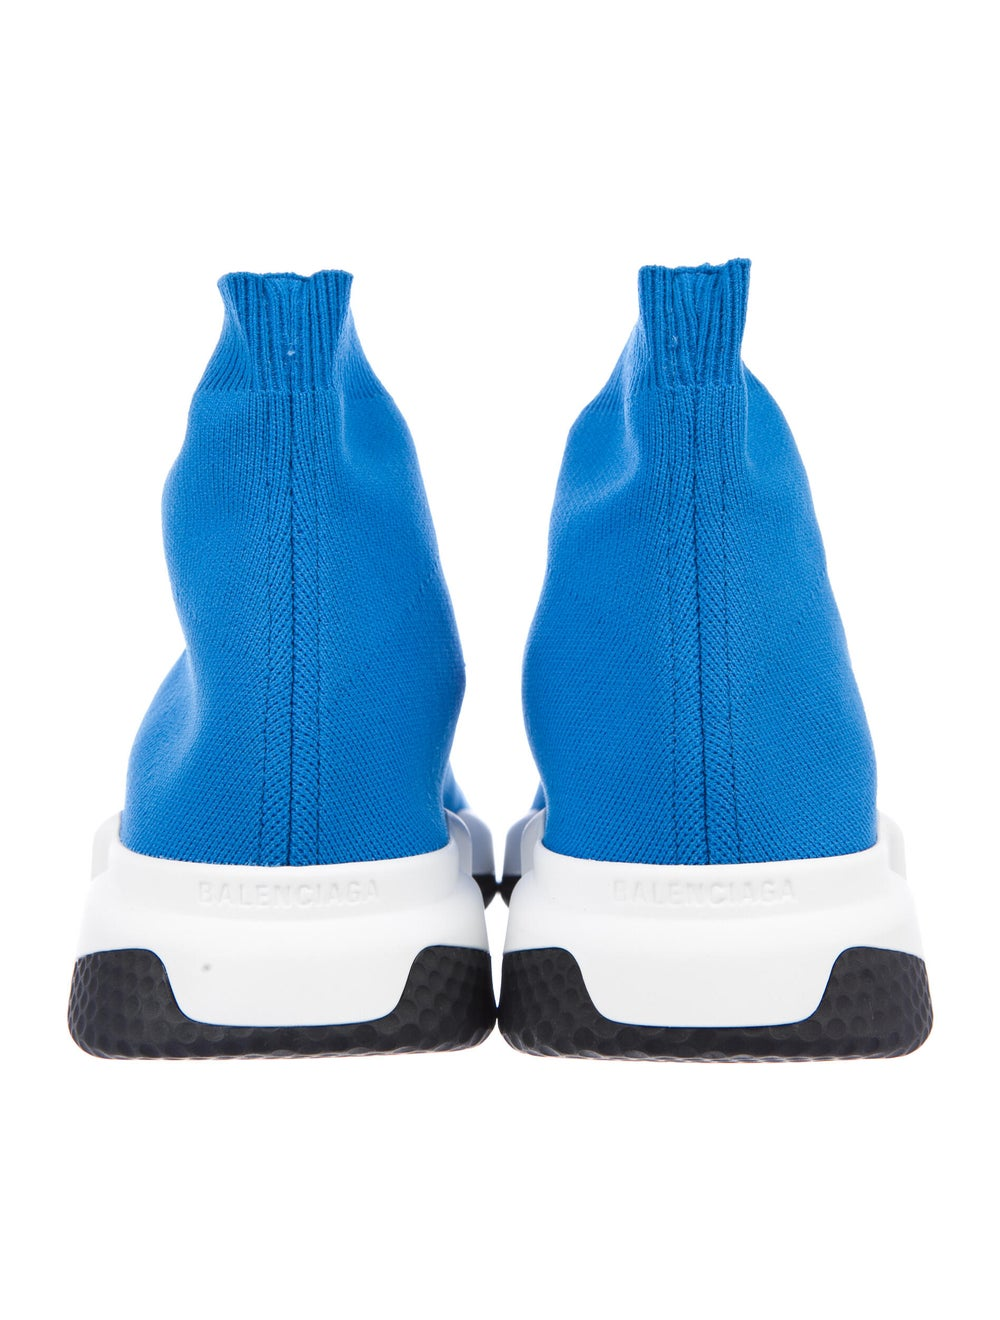 Balenciaga Speed Trainers Sneakers Blue - image 4